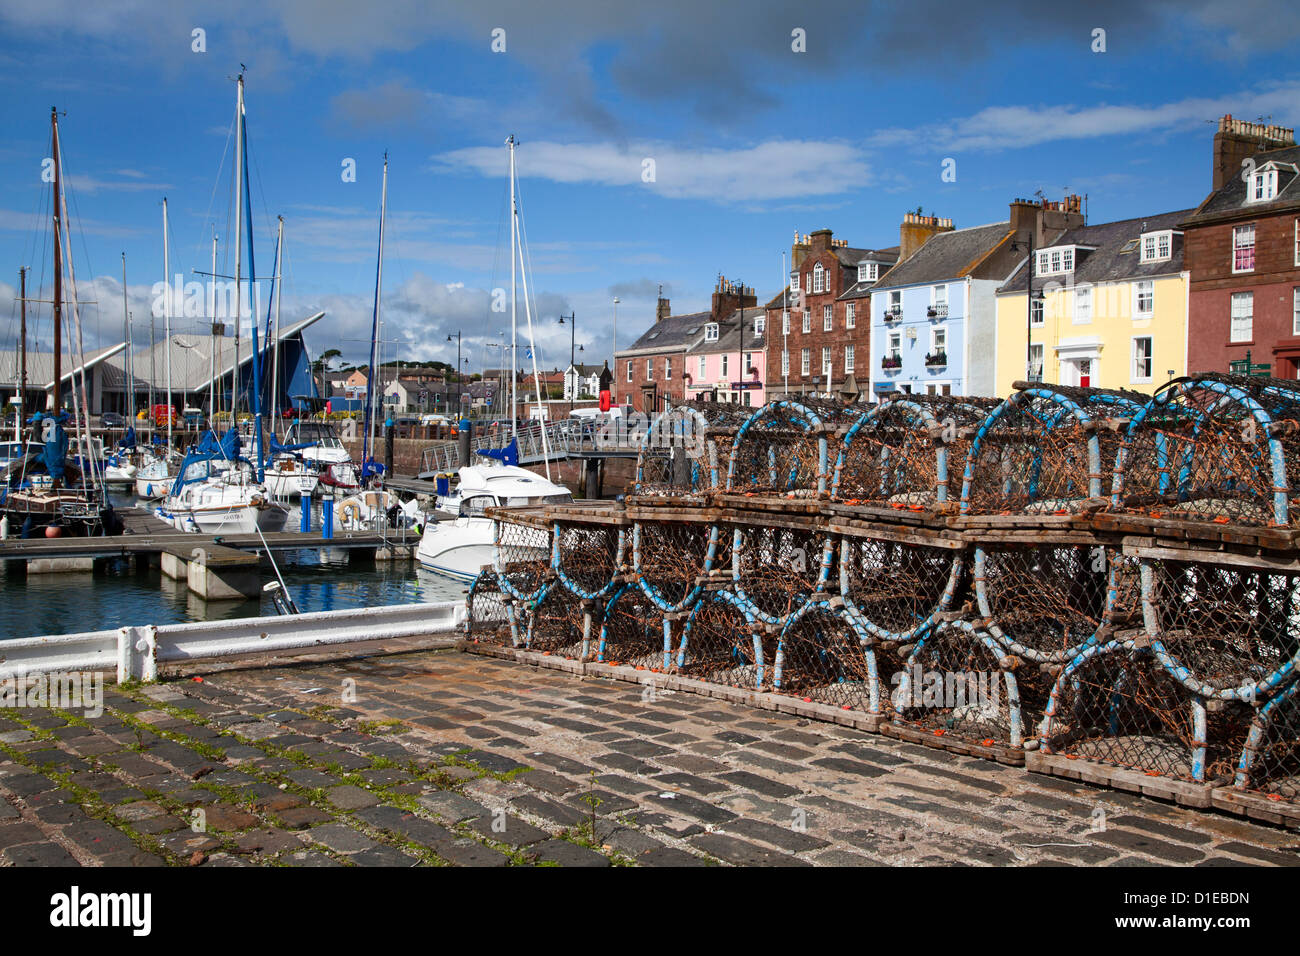 Lobster pots on the Quayside at the Harbour in Arbroath, Angus, Scotland, United Kingdom, Europe - Stock Image